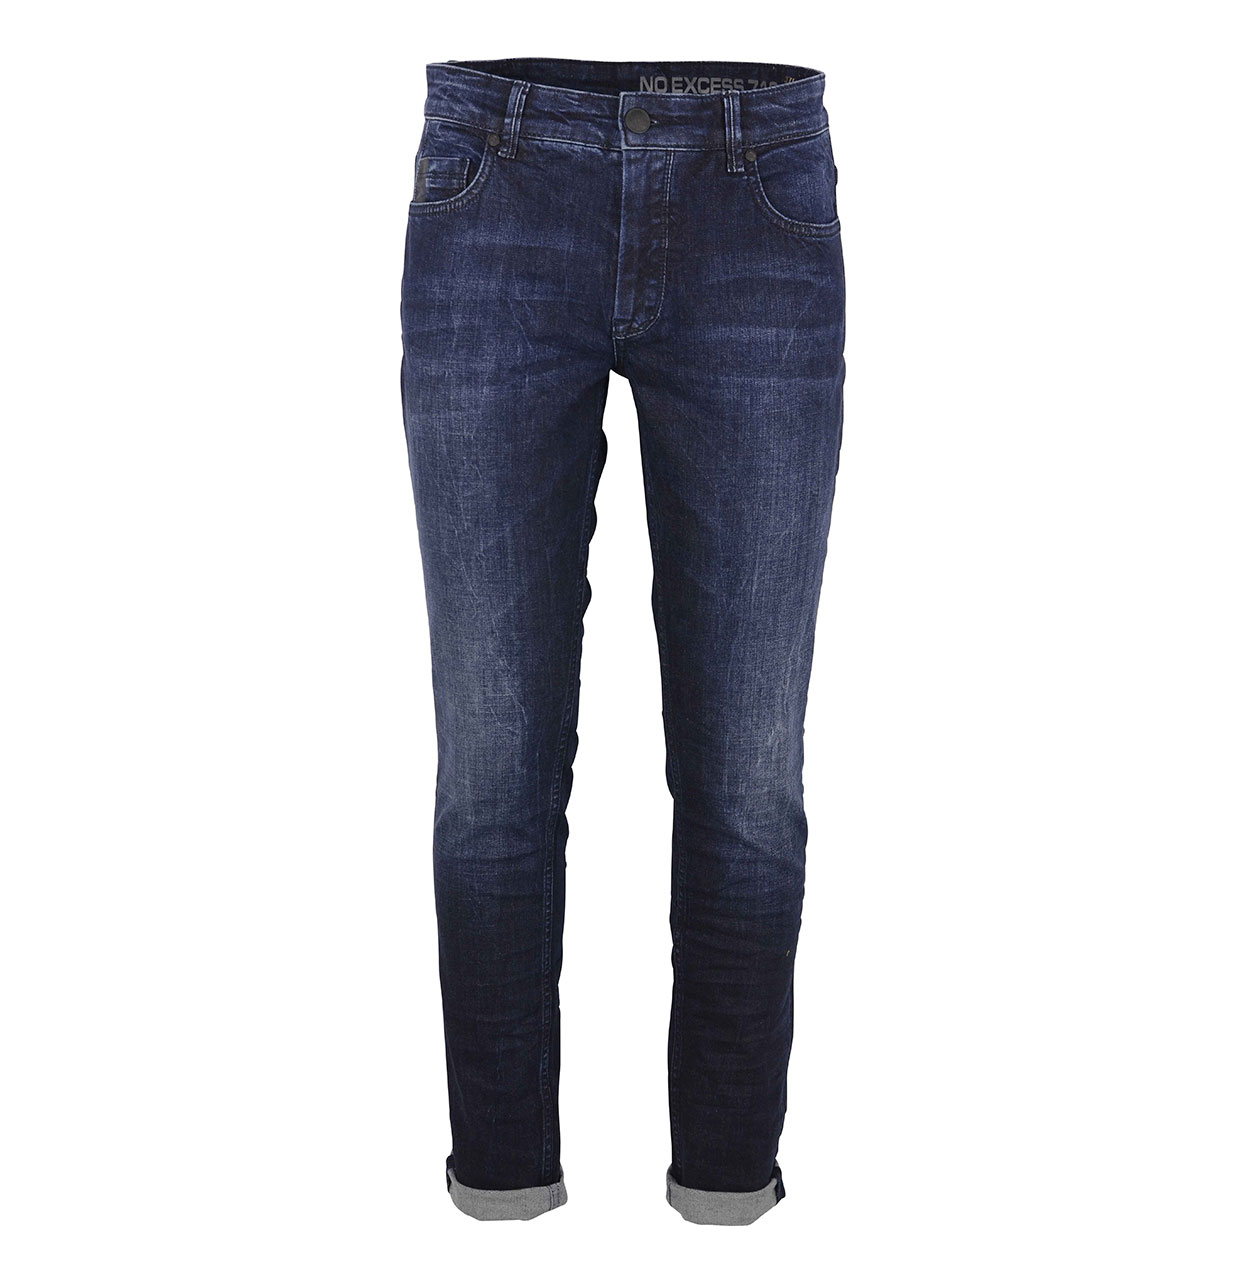 No Excess Jeans N710D1534 228 Stone Used N710D1534 blauw Maat 31